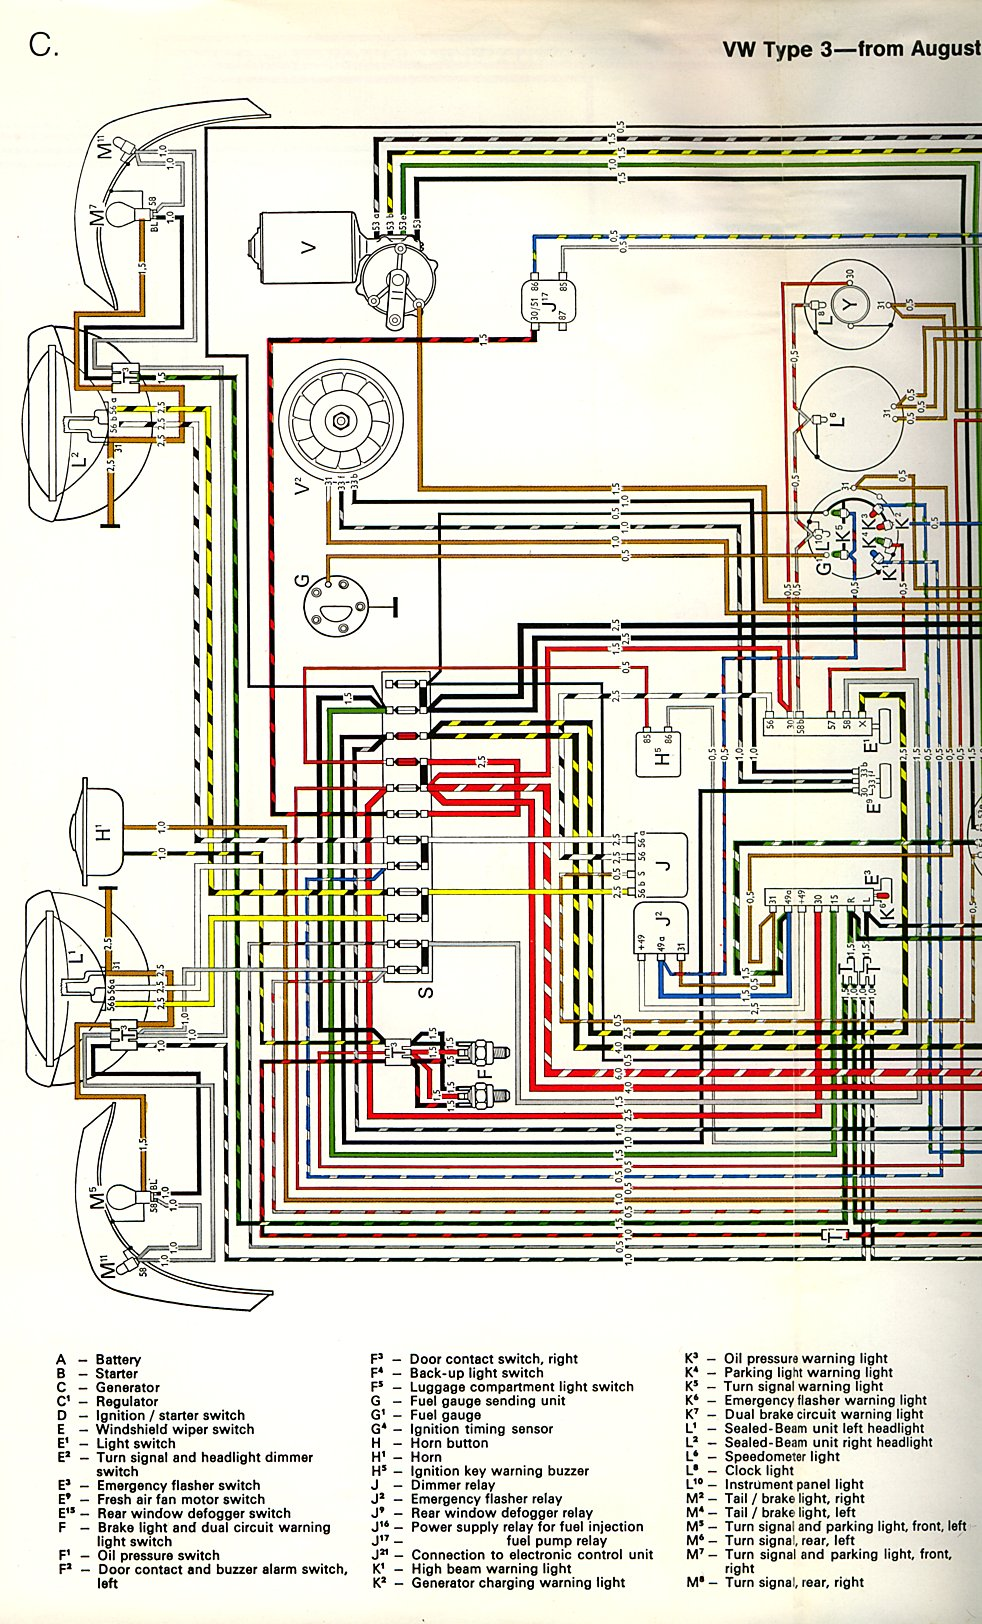 1973 vw type 3 wiring diagram online schematic diagram u2022 rh holyoak co 1969 VW Bus Wiring Harness VW Wiring Harness Diagram